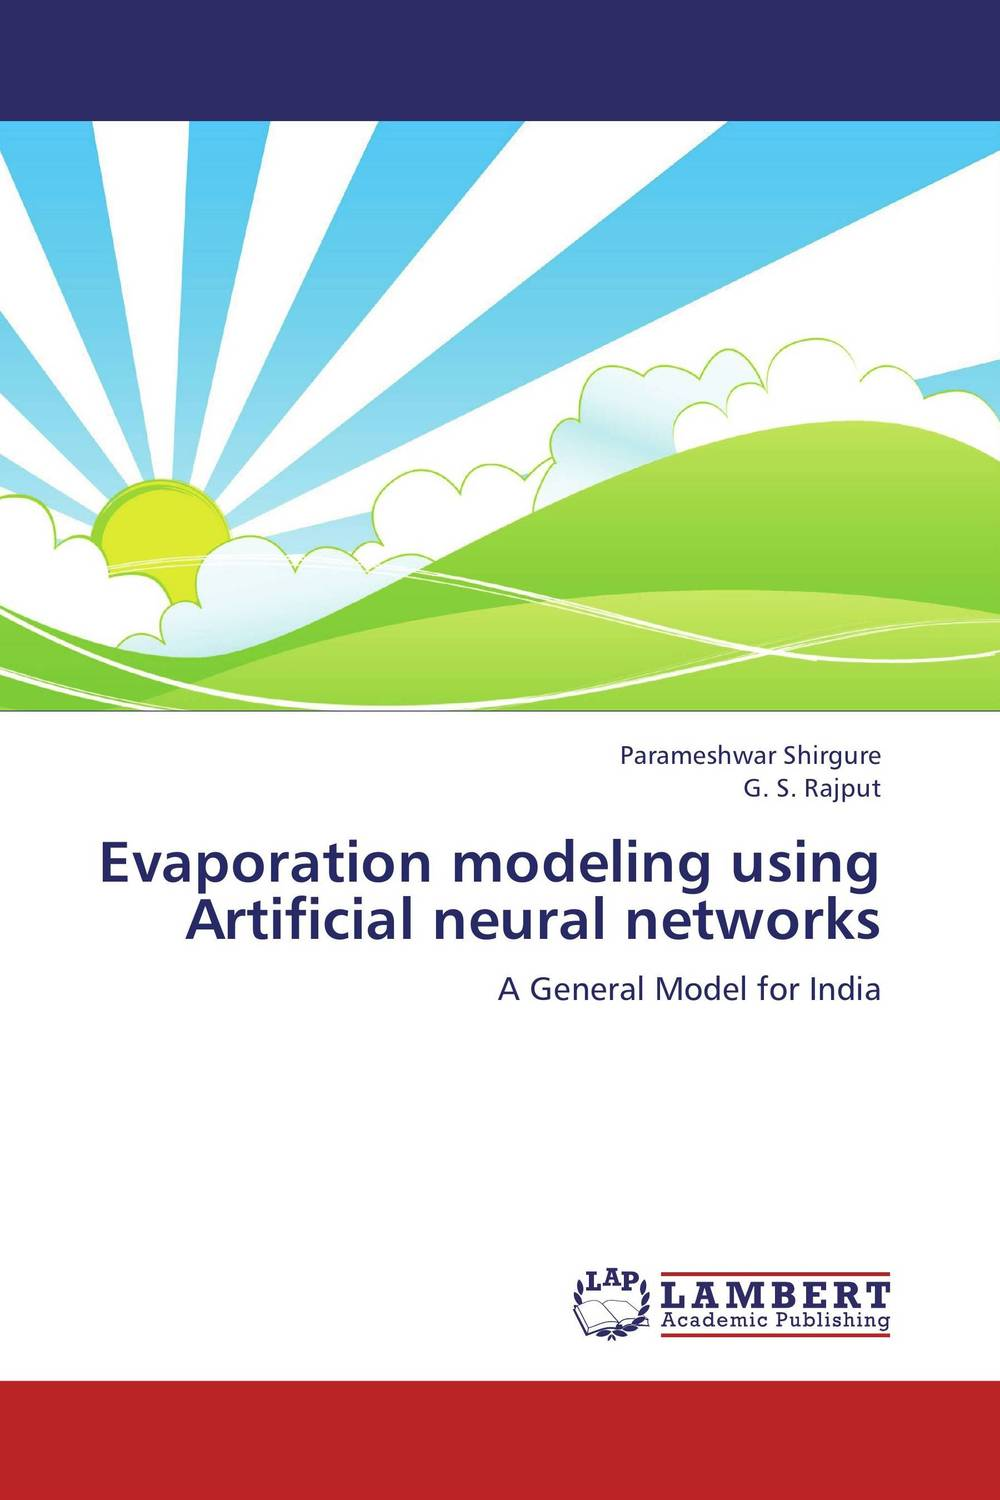 Evaporation modeling using Artificial neural networks wind resource assessment and forecast with artificial neural networks